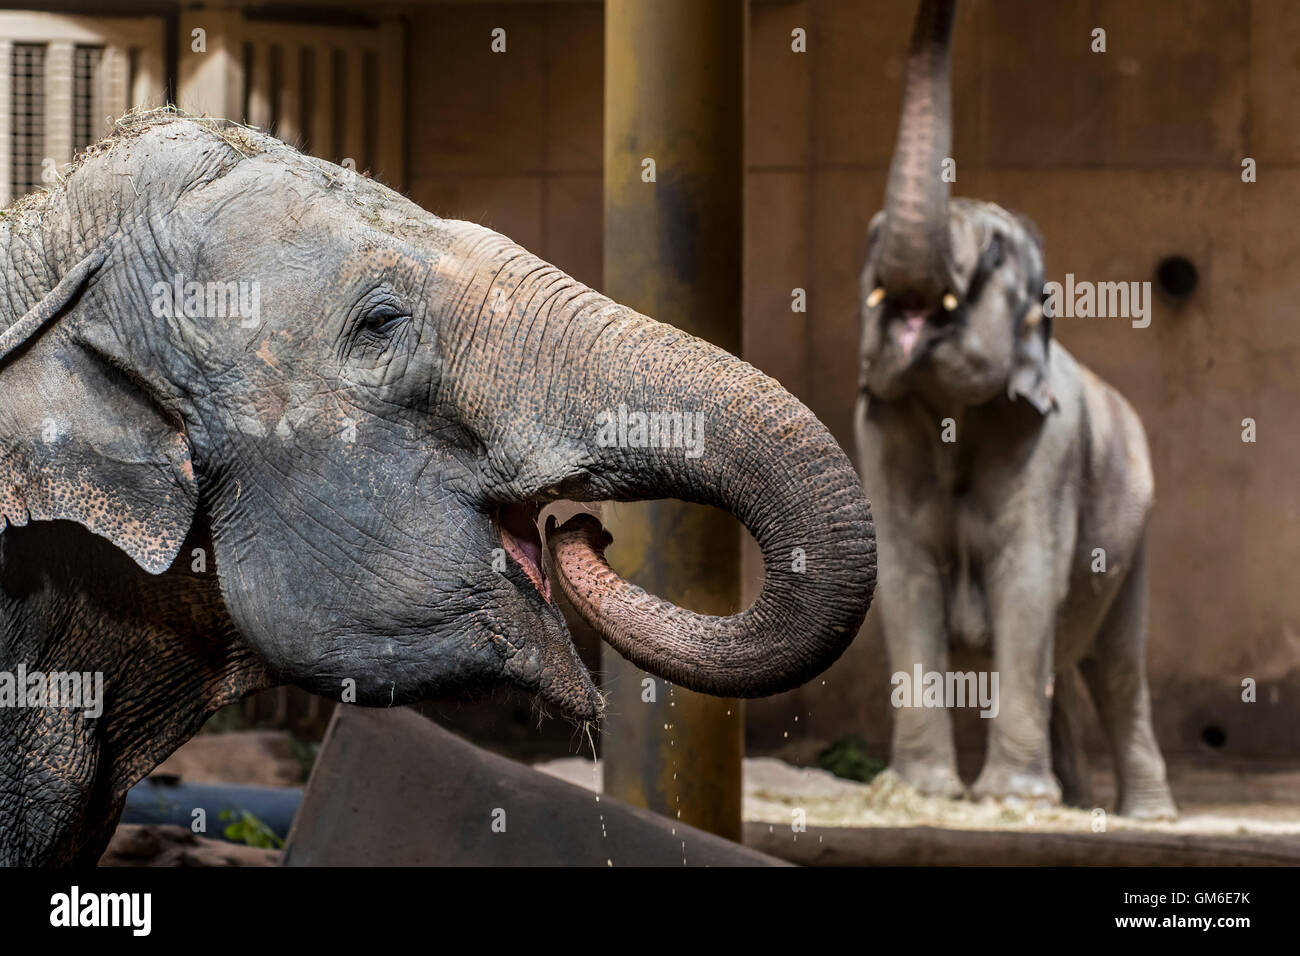 Asian elephant / Asiatic elephants (Elephas maximus) drinking and feeding in indoor enclosure in the Planckendael - Stock Image